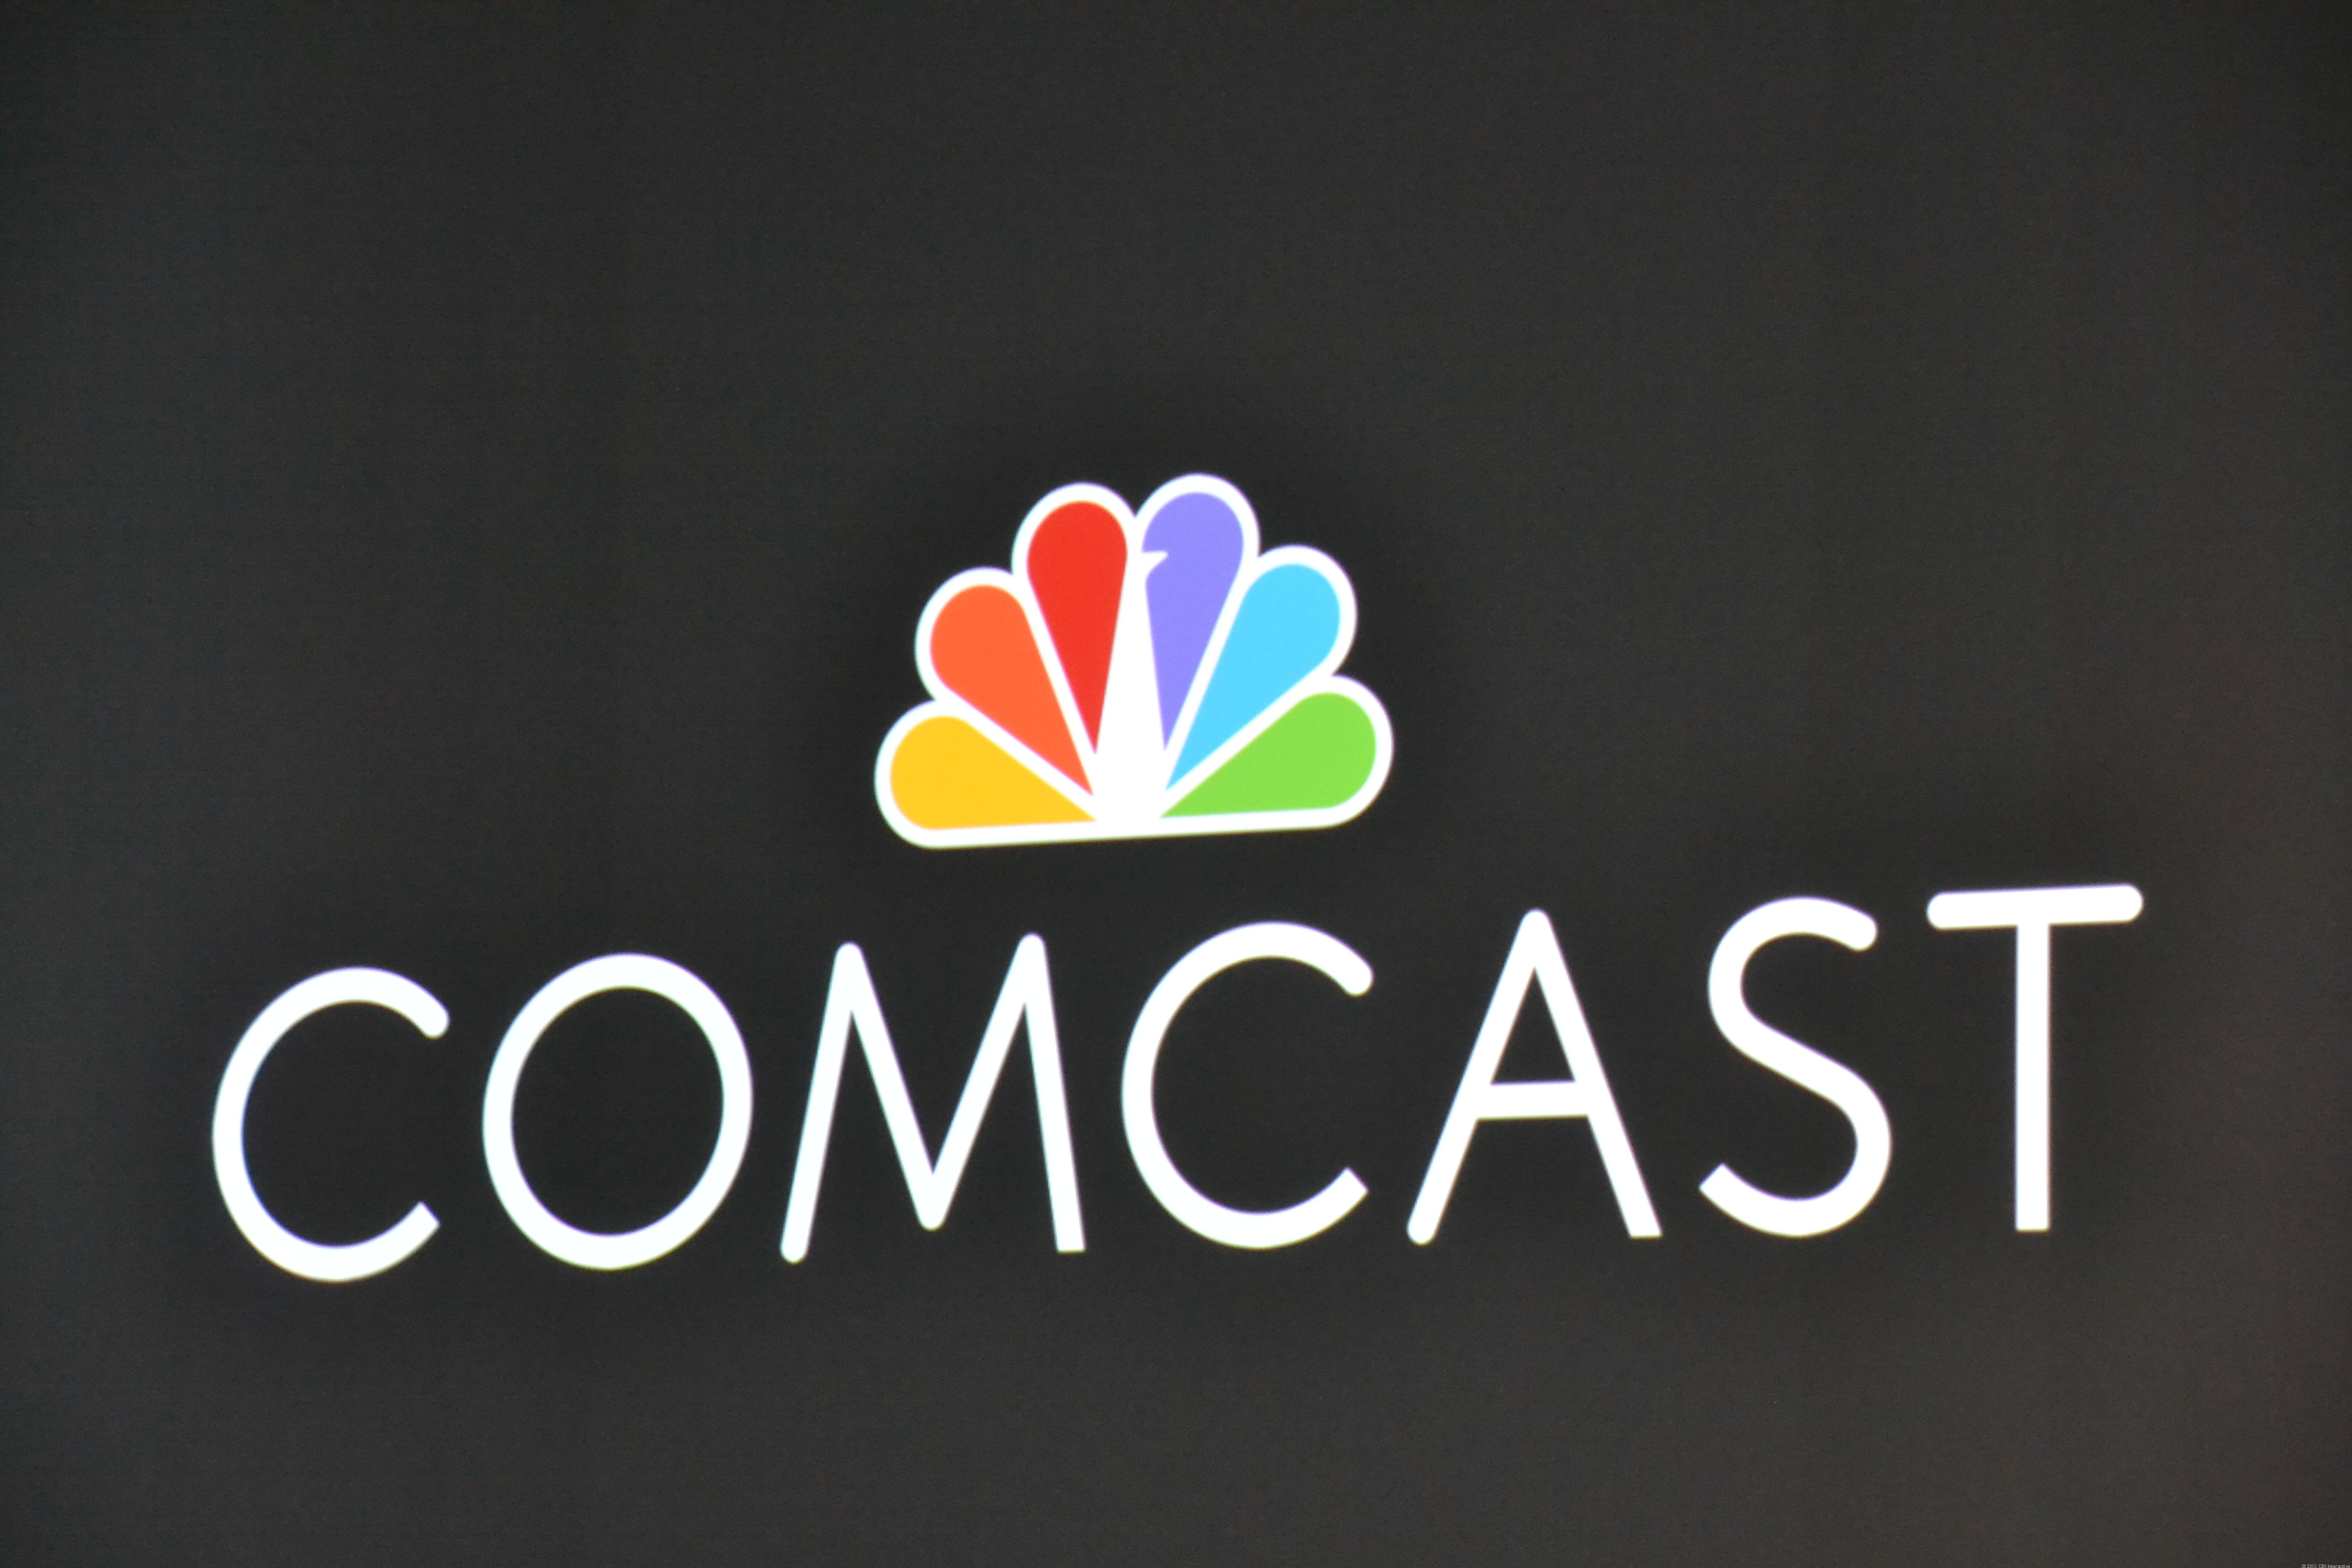 Comcast_NBC_logo